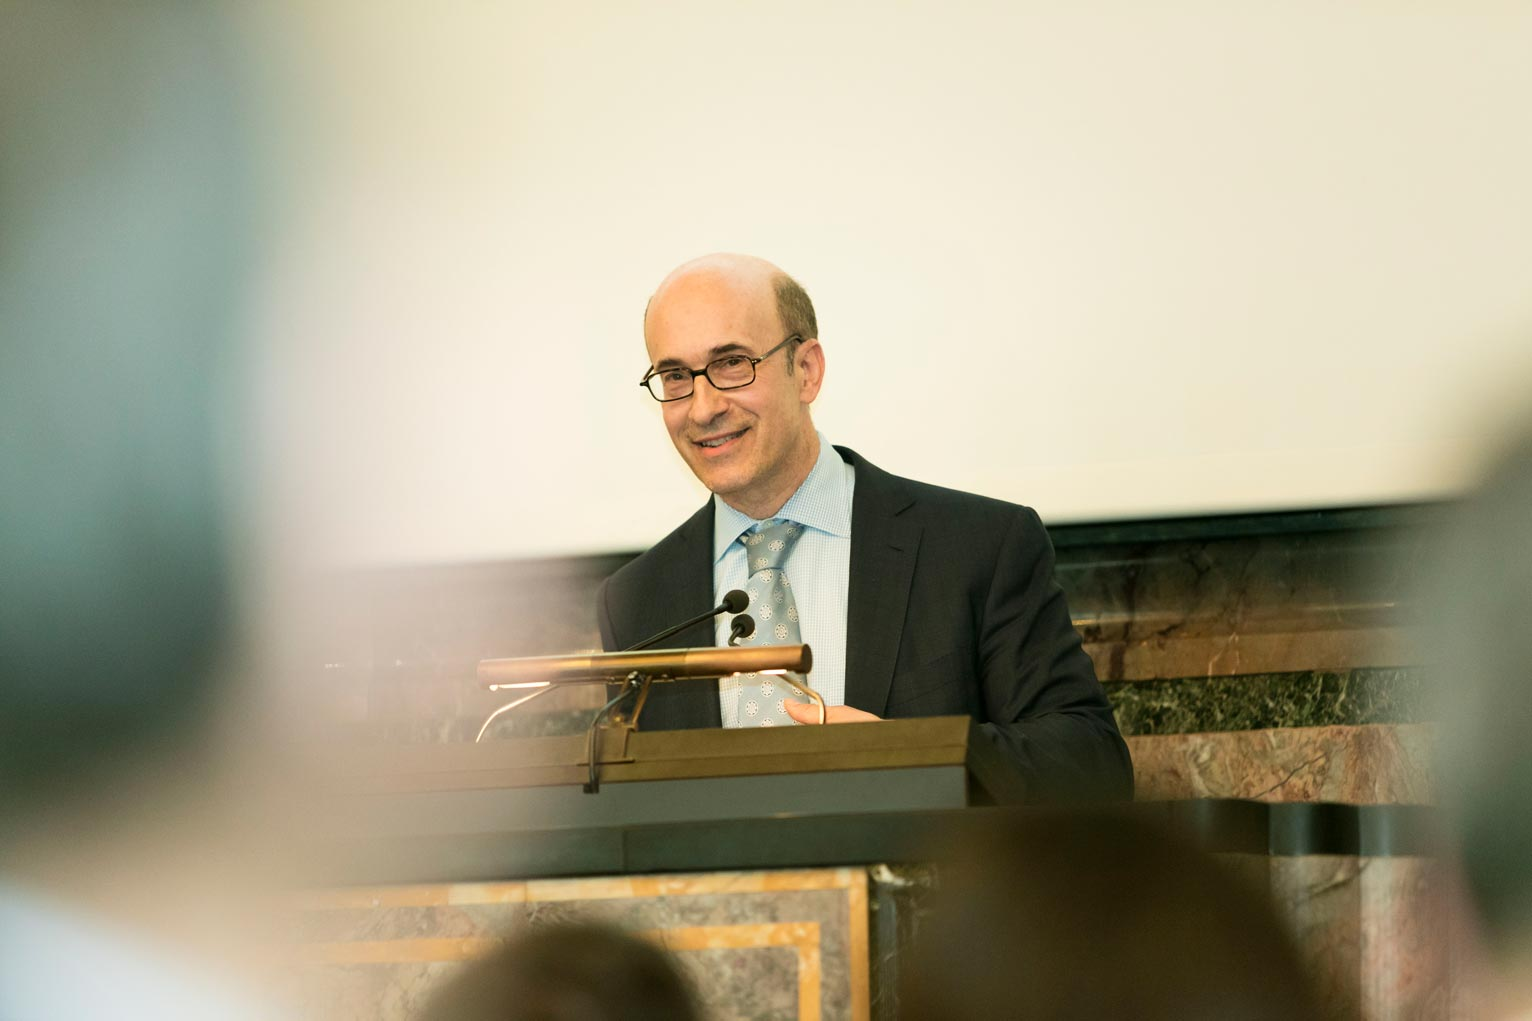 Ken Rogoff advocates for a gradual phase-out of cash